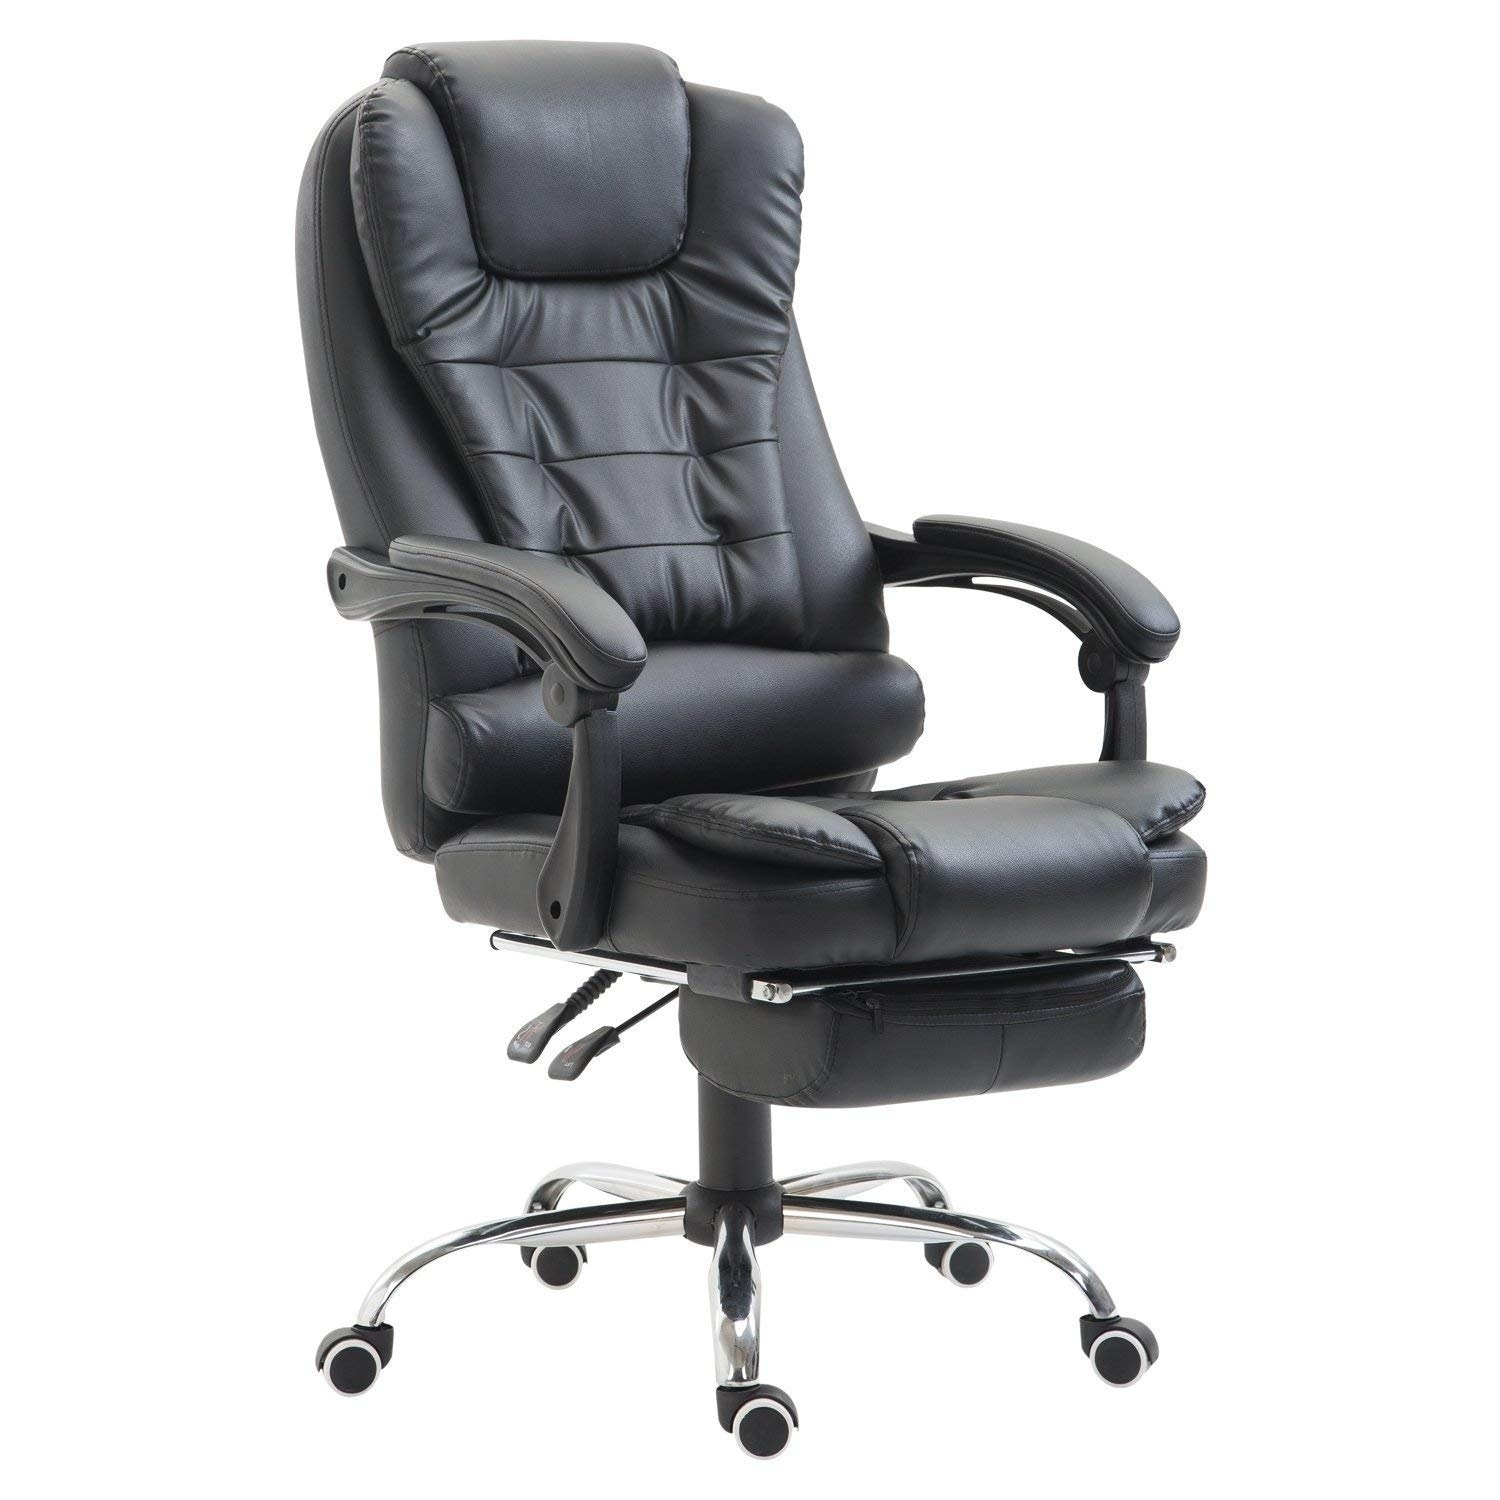 pu leather office chair floating lounge shop homcom high back reclining executive home with retractable footrest black